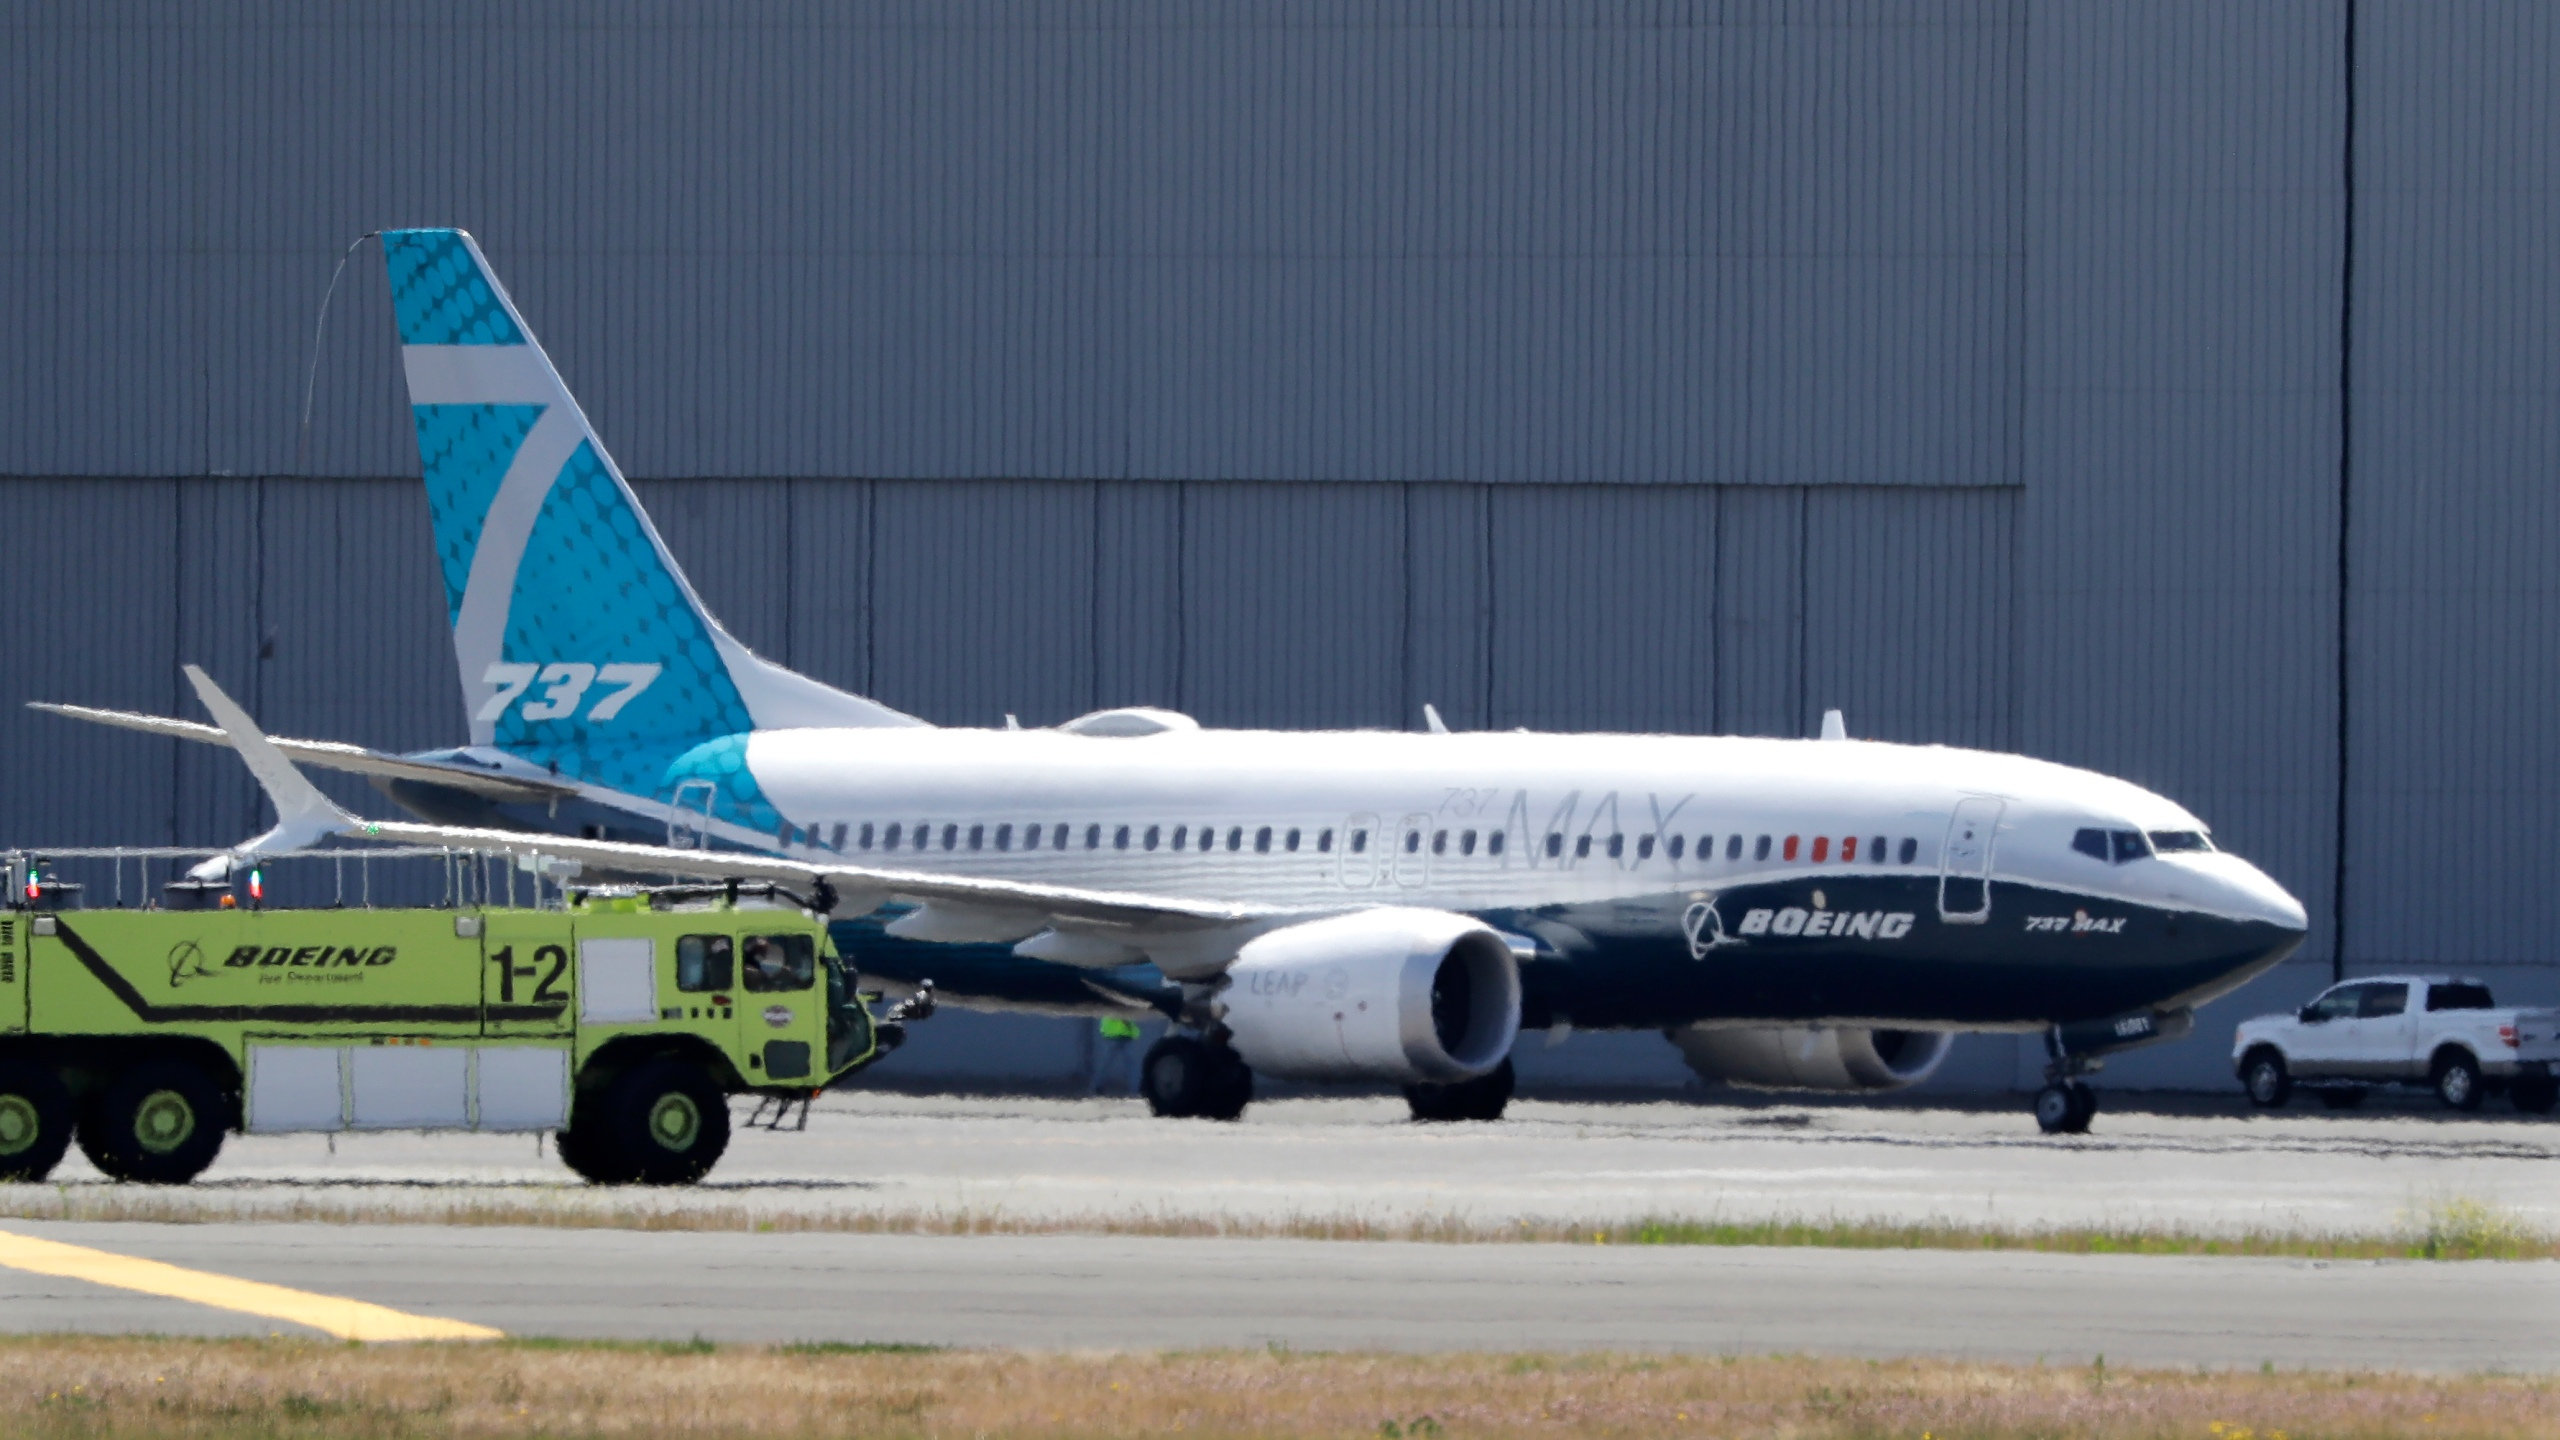 In this June 29, 2020, file photo, A Boeing 737 MAX jet taxis after landing at Boeing Field following a test flight in Seattle. (Elaine Thompson/Associated Press)